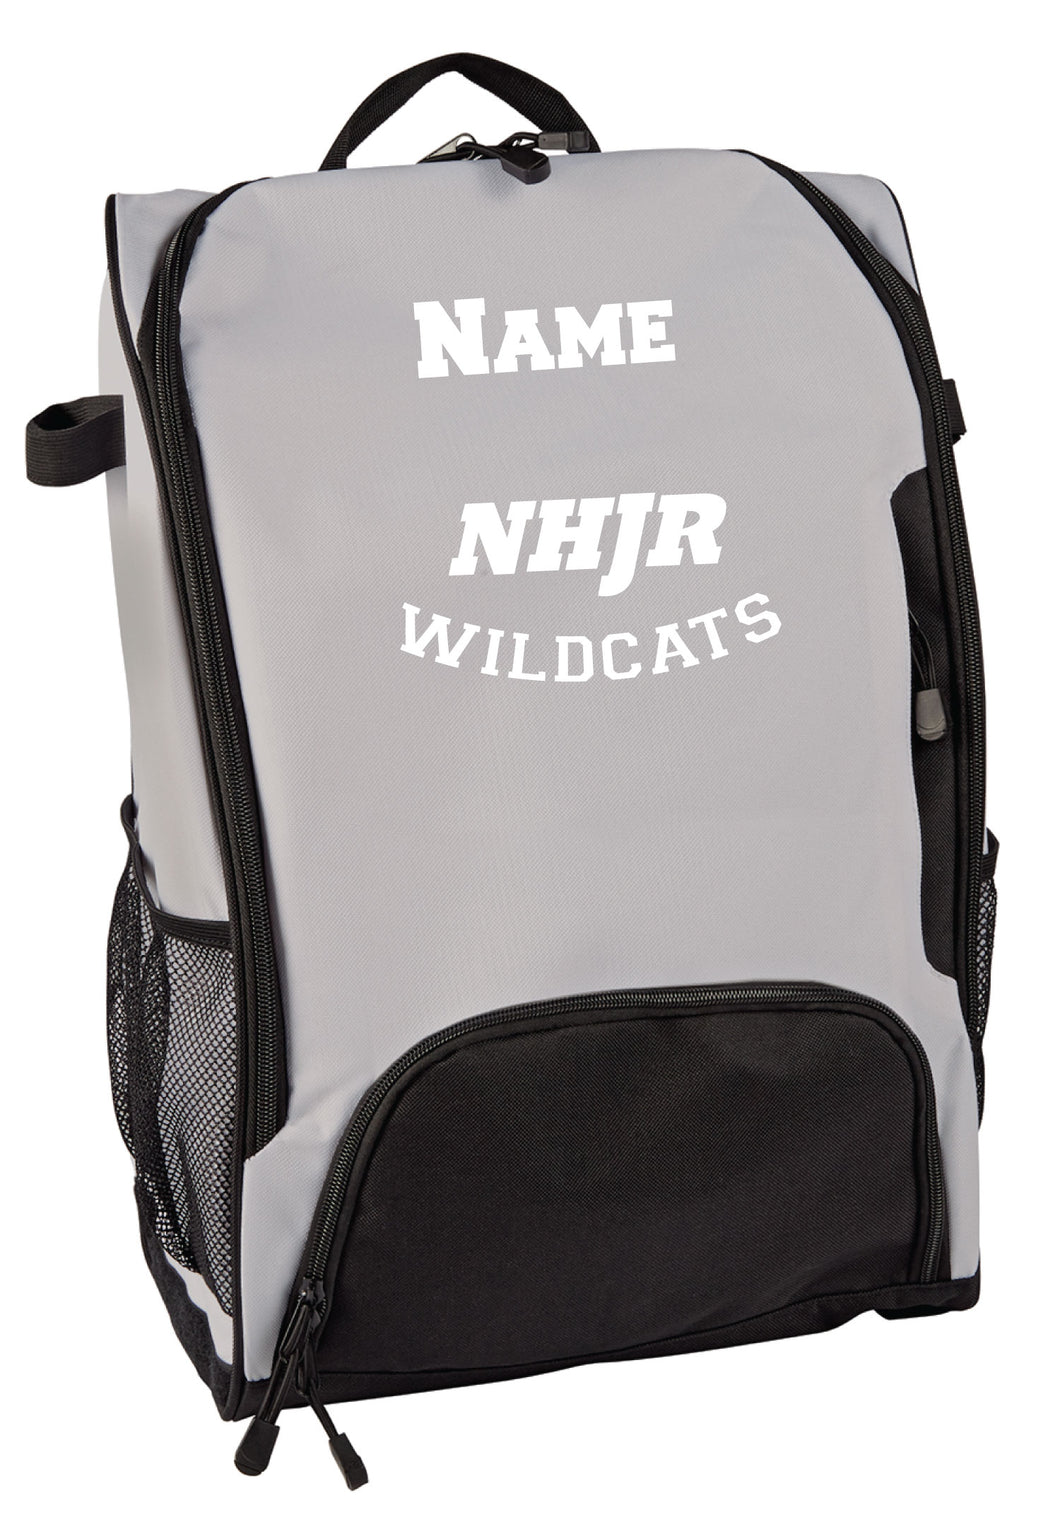 NH JR. Football Backpack